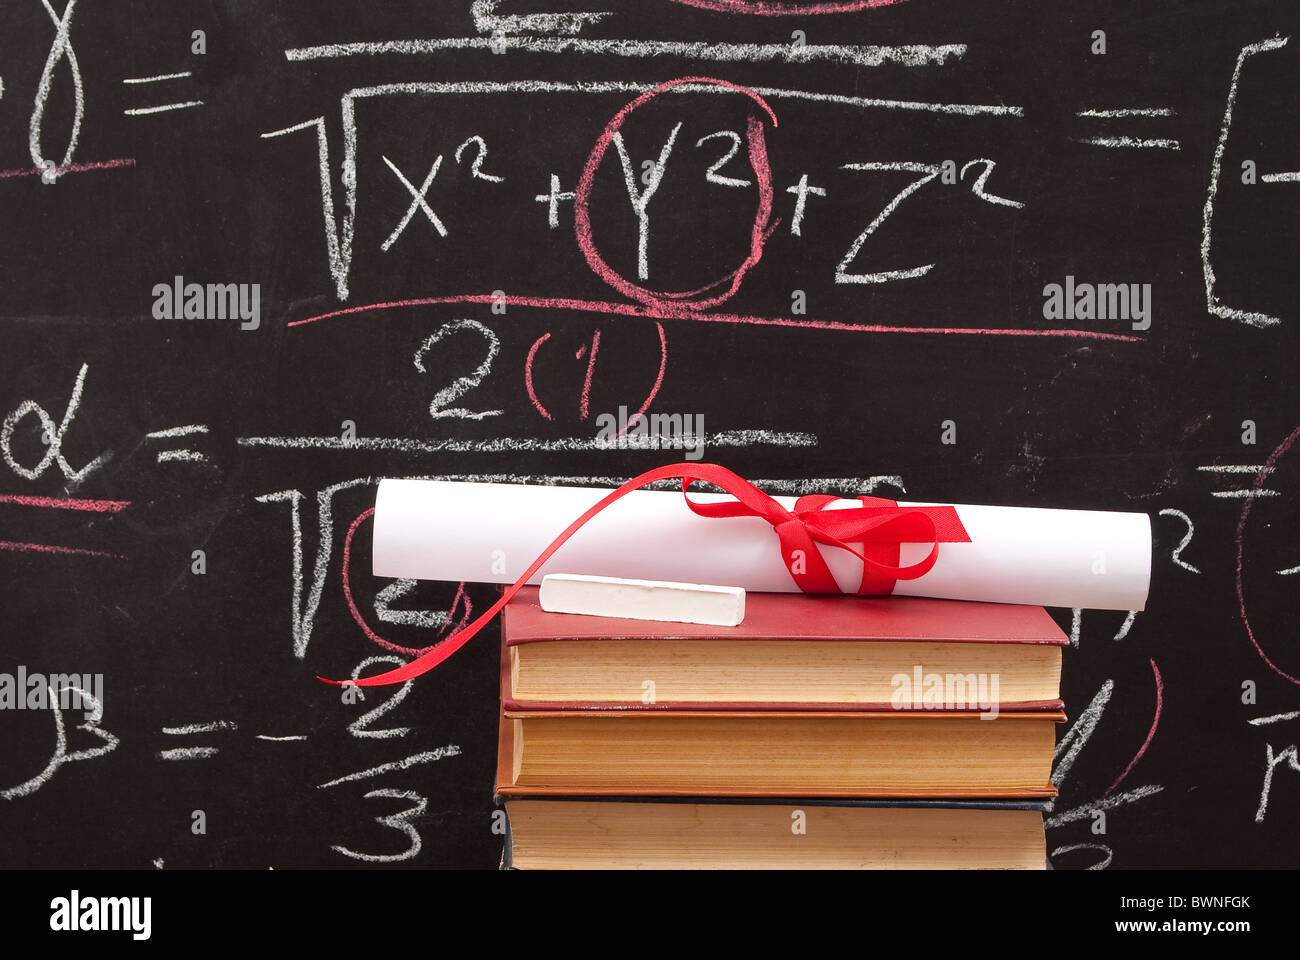 Chalkboard with a diploma and books - Stock Image